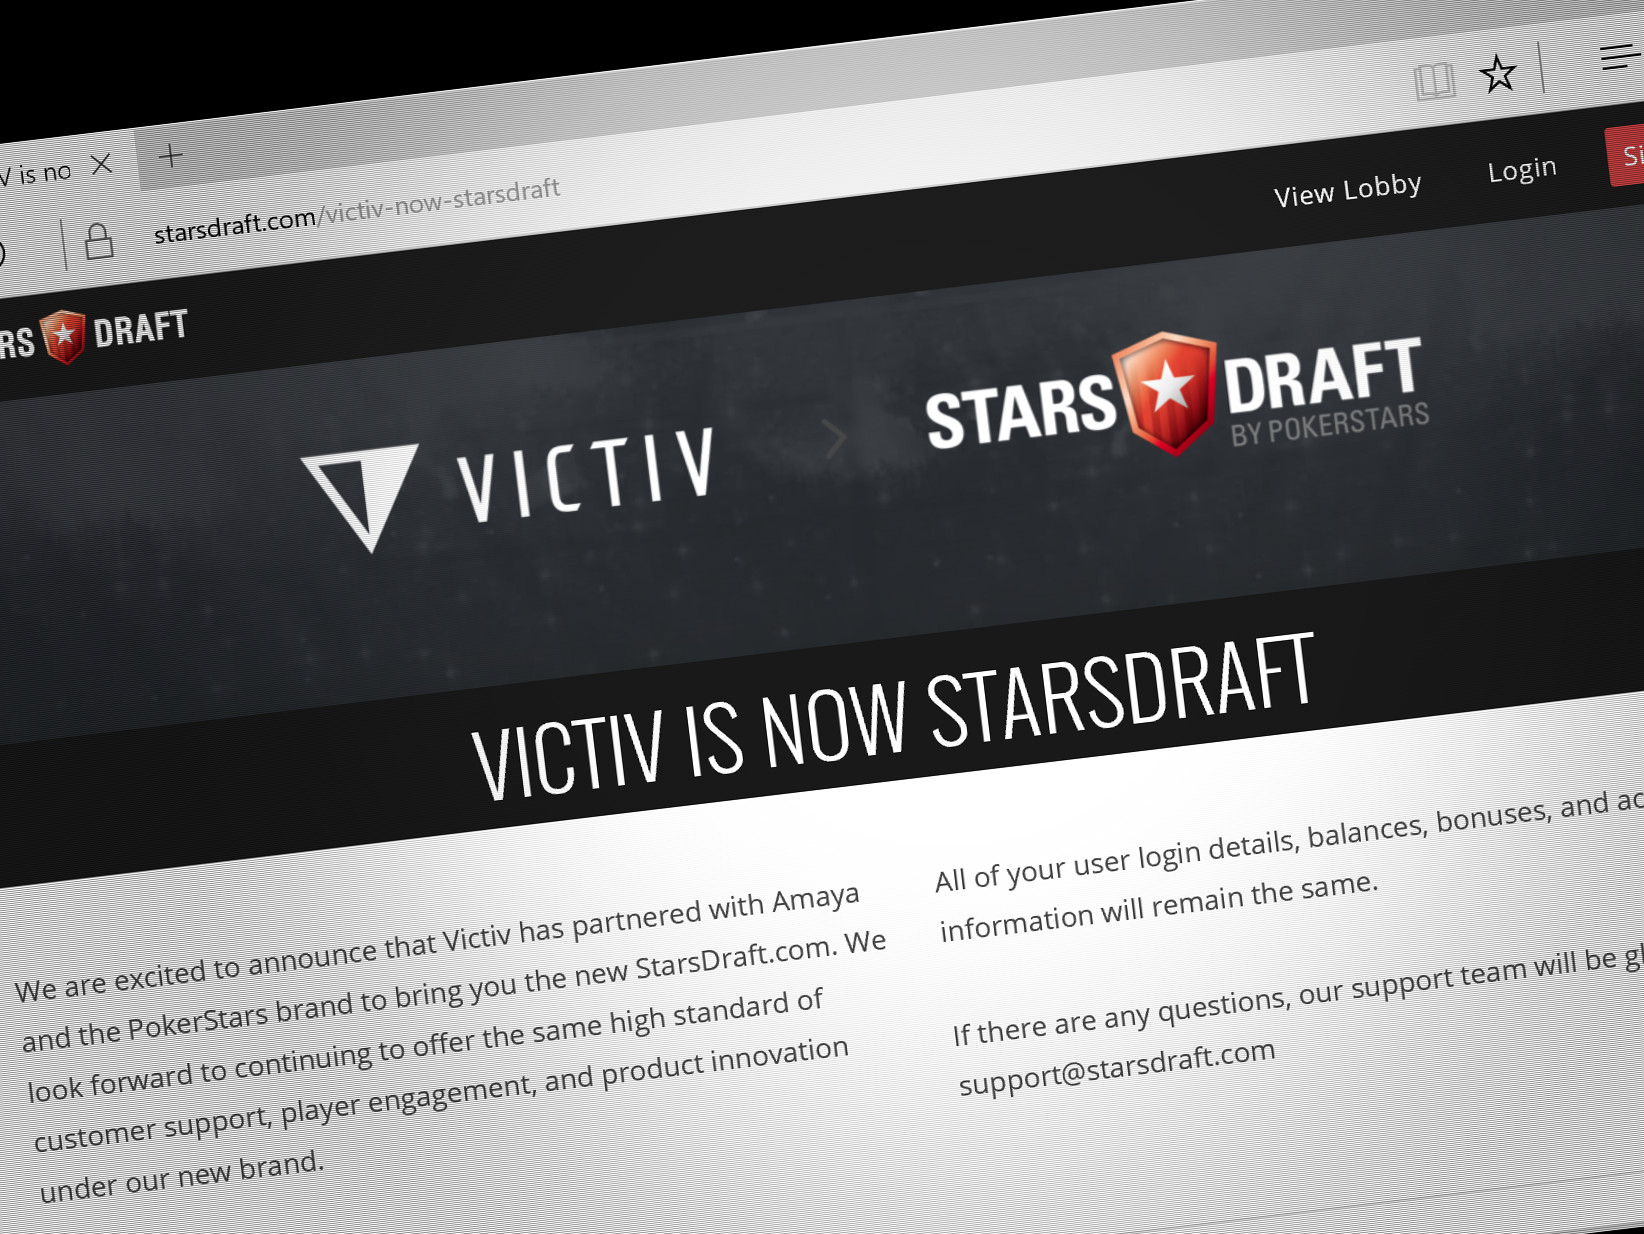 PokerStars launched daily fantasy sports site StarsDraft last week after its parent company Amaya bought the second tier DFS site, Victiv, earlier this year.